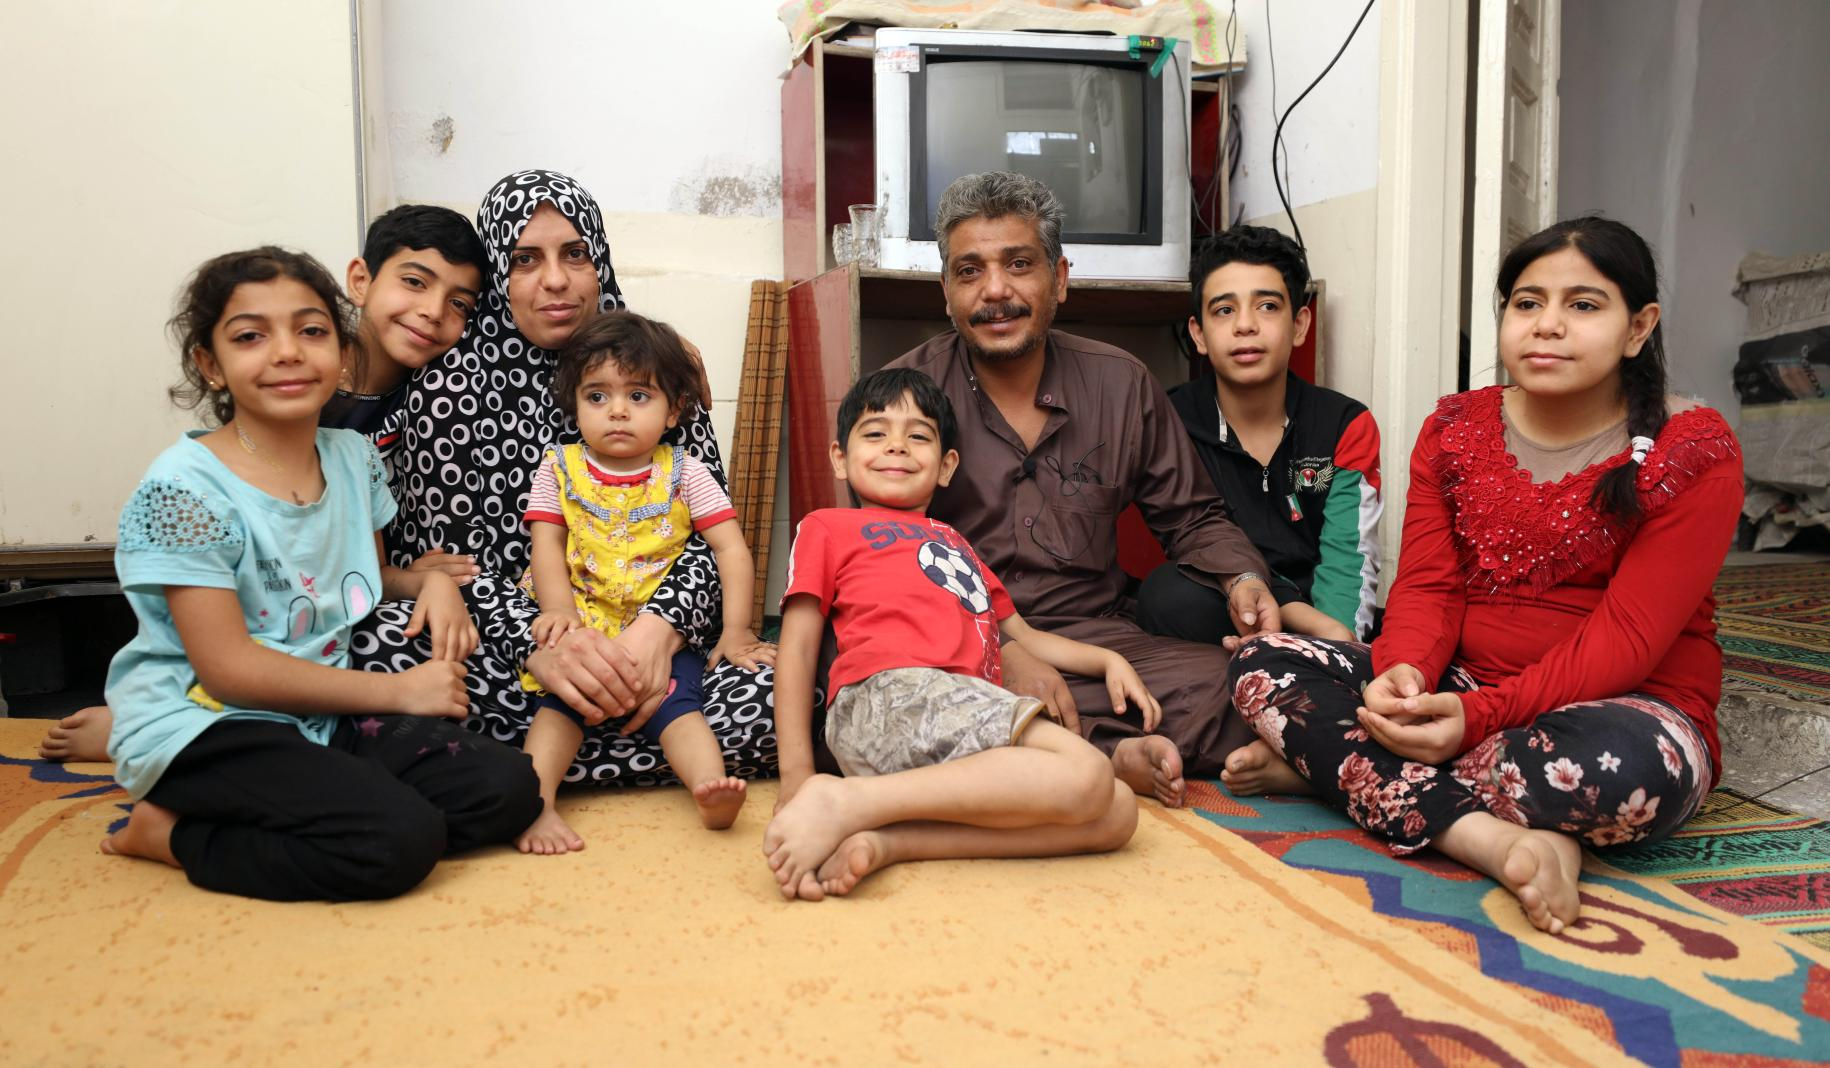 Khaled sits in their tv room on the floor with his family surrounding him.